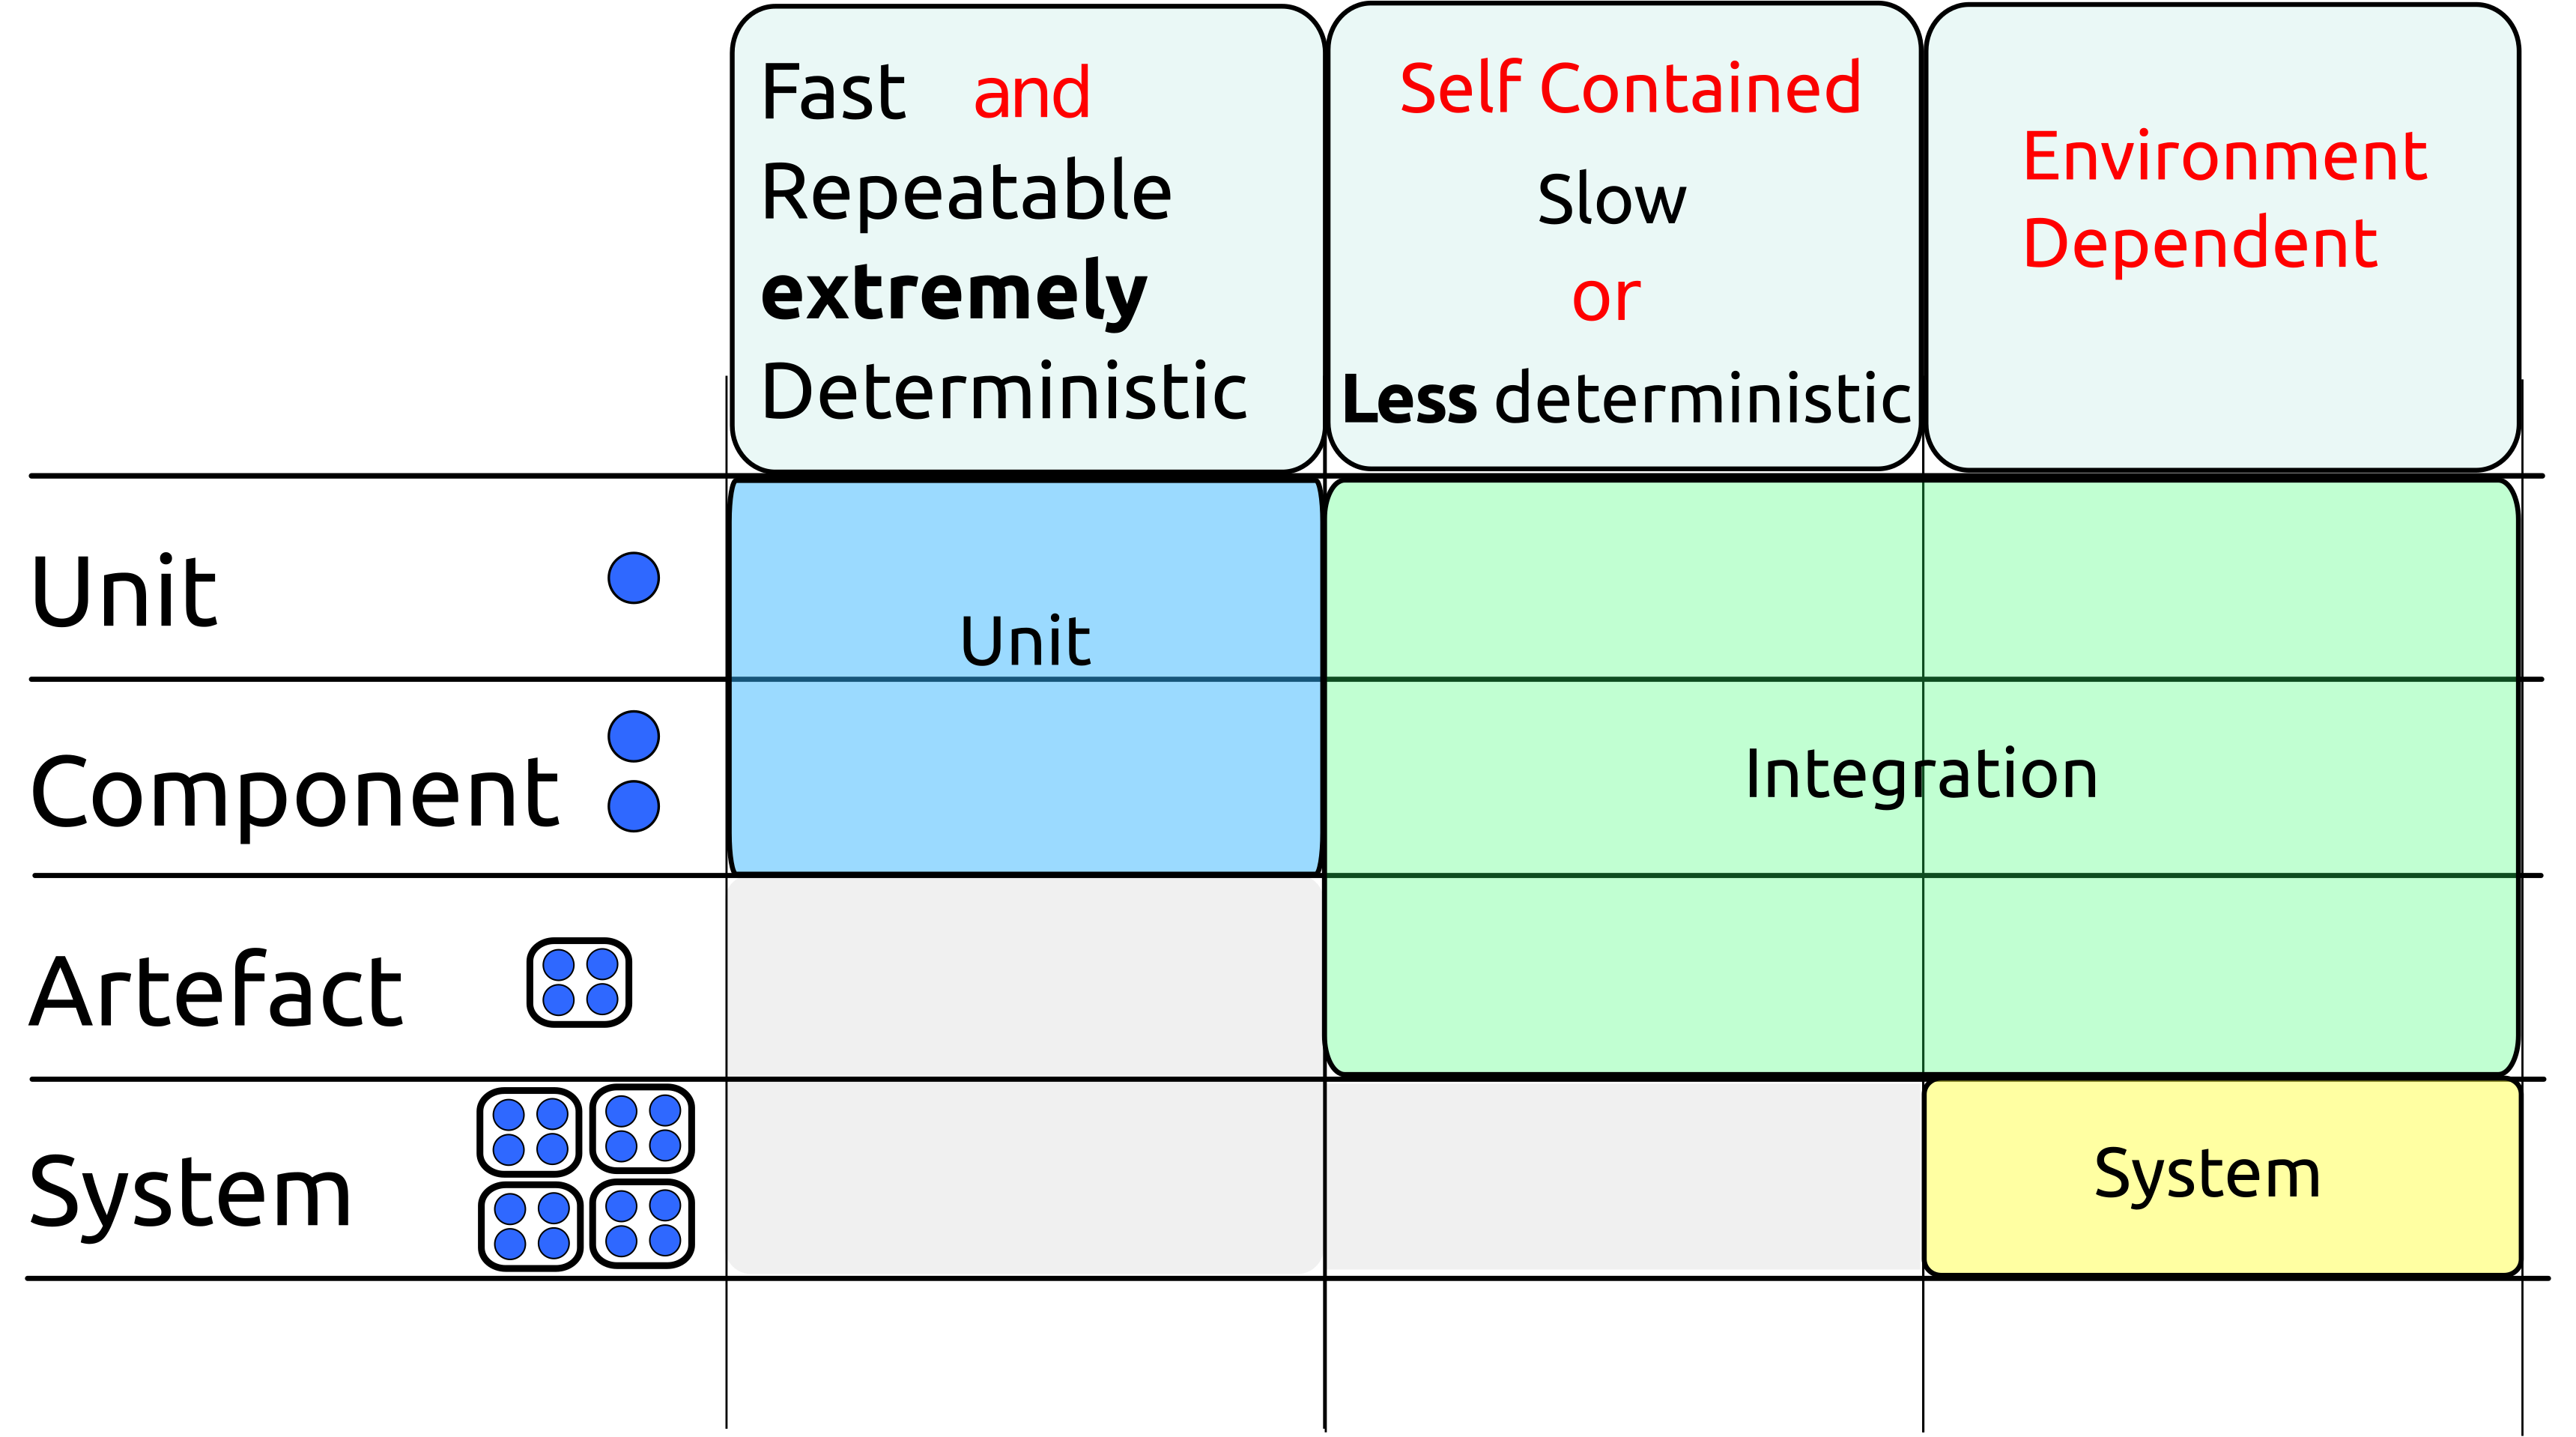 Properties of different test types